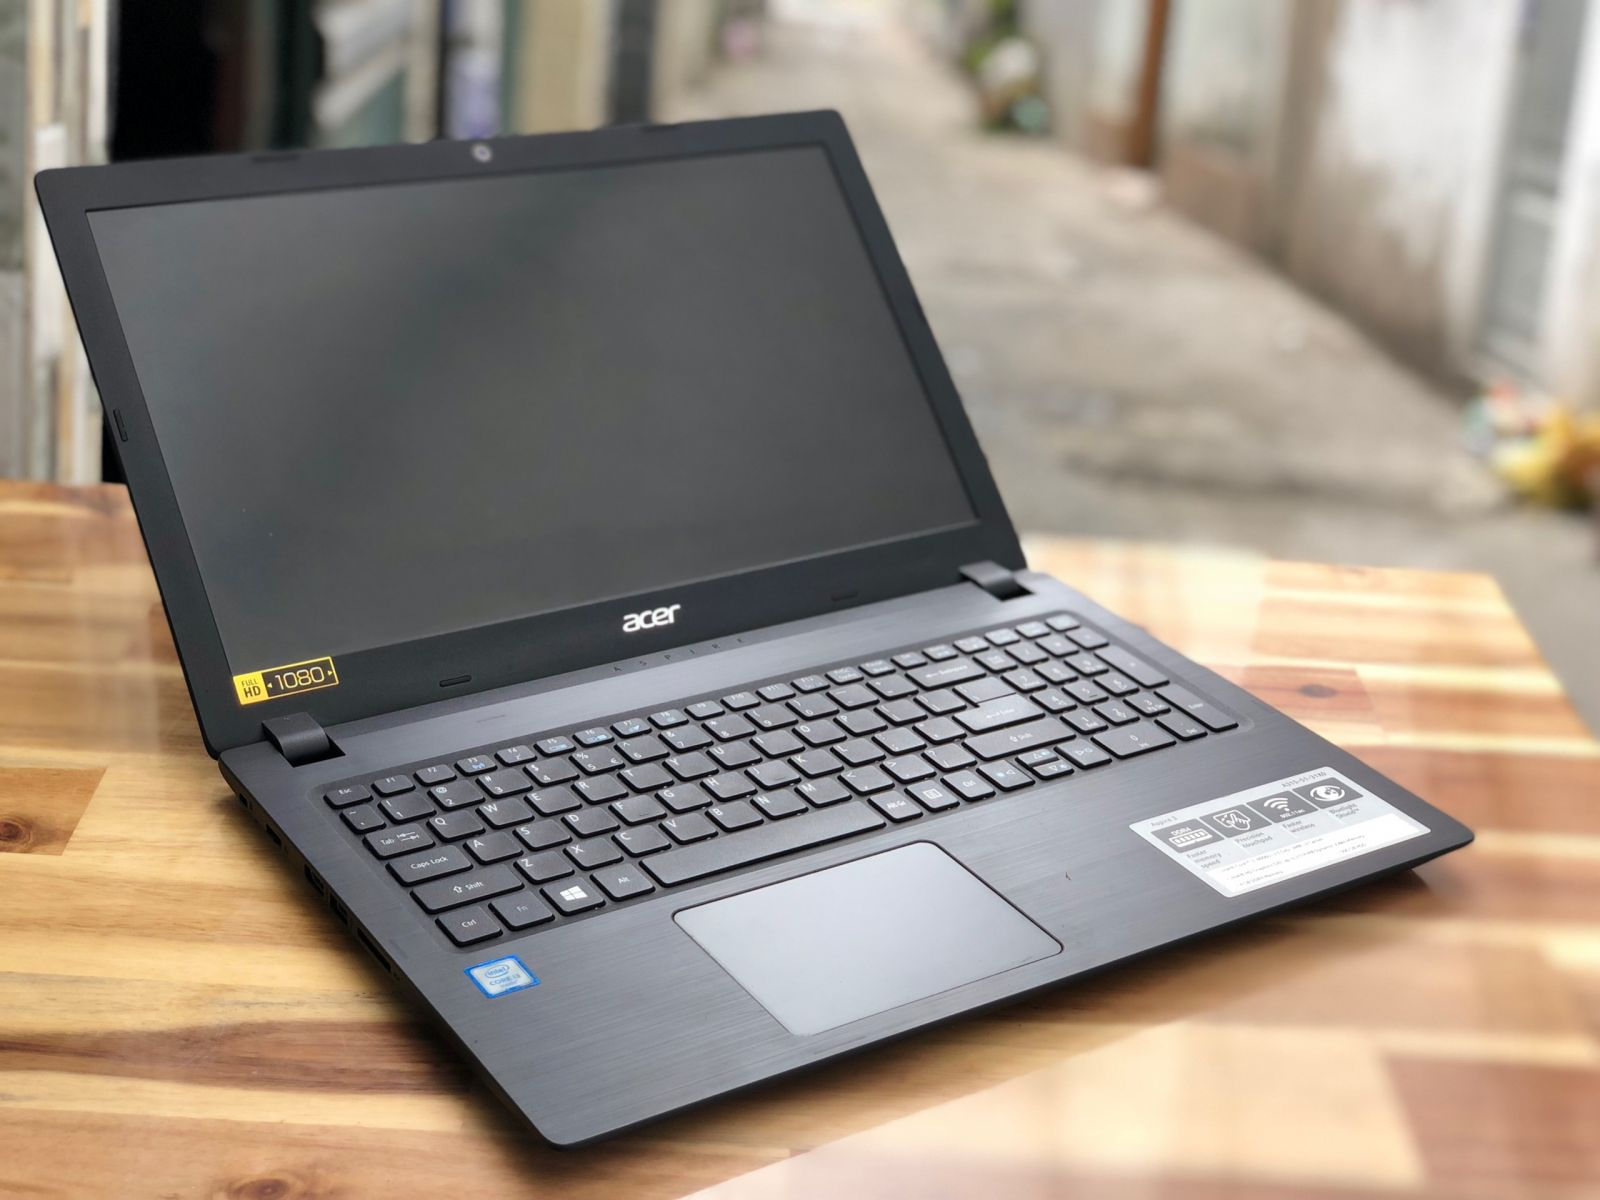 Laptop Acer Ultrabook Aspire A315-51, i3 7100U 4G SSD128 Full HD Like new giá rẻ6